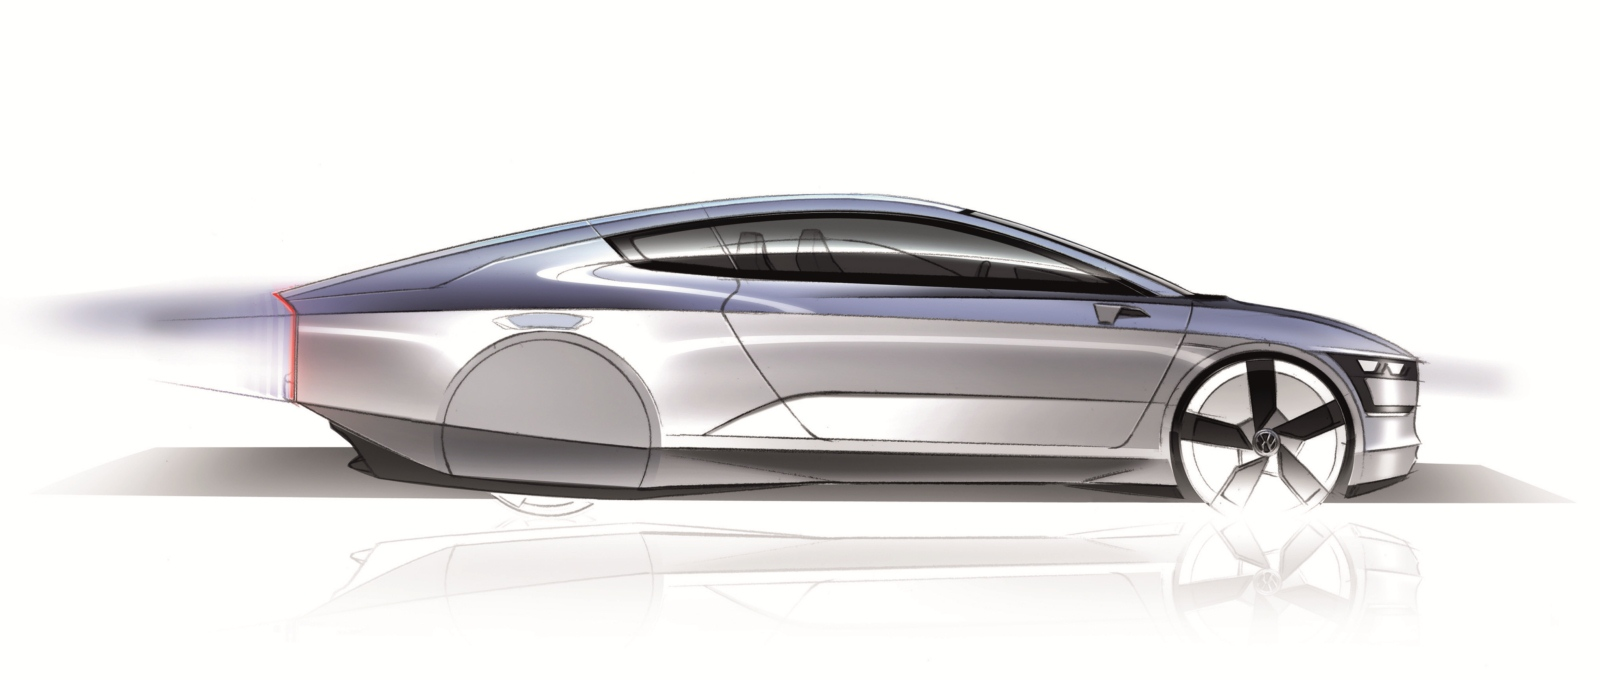 2017 Volkswagen XL1 Concept photo - 1